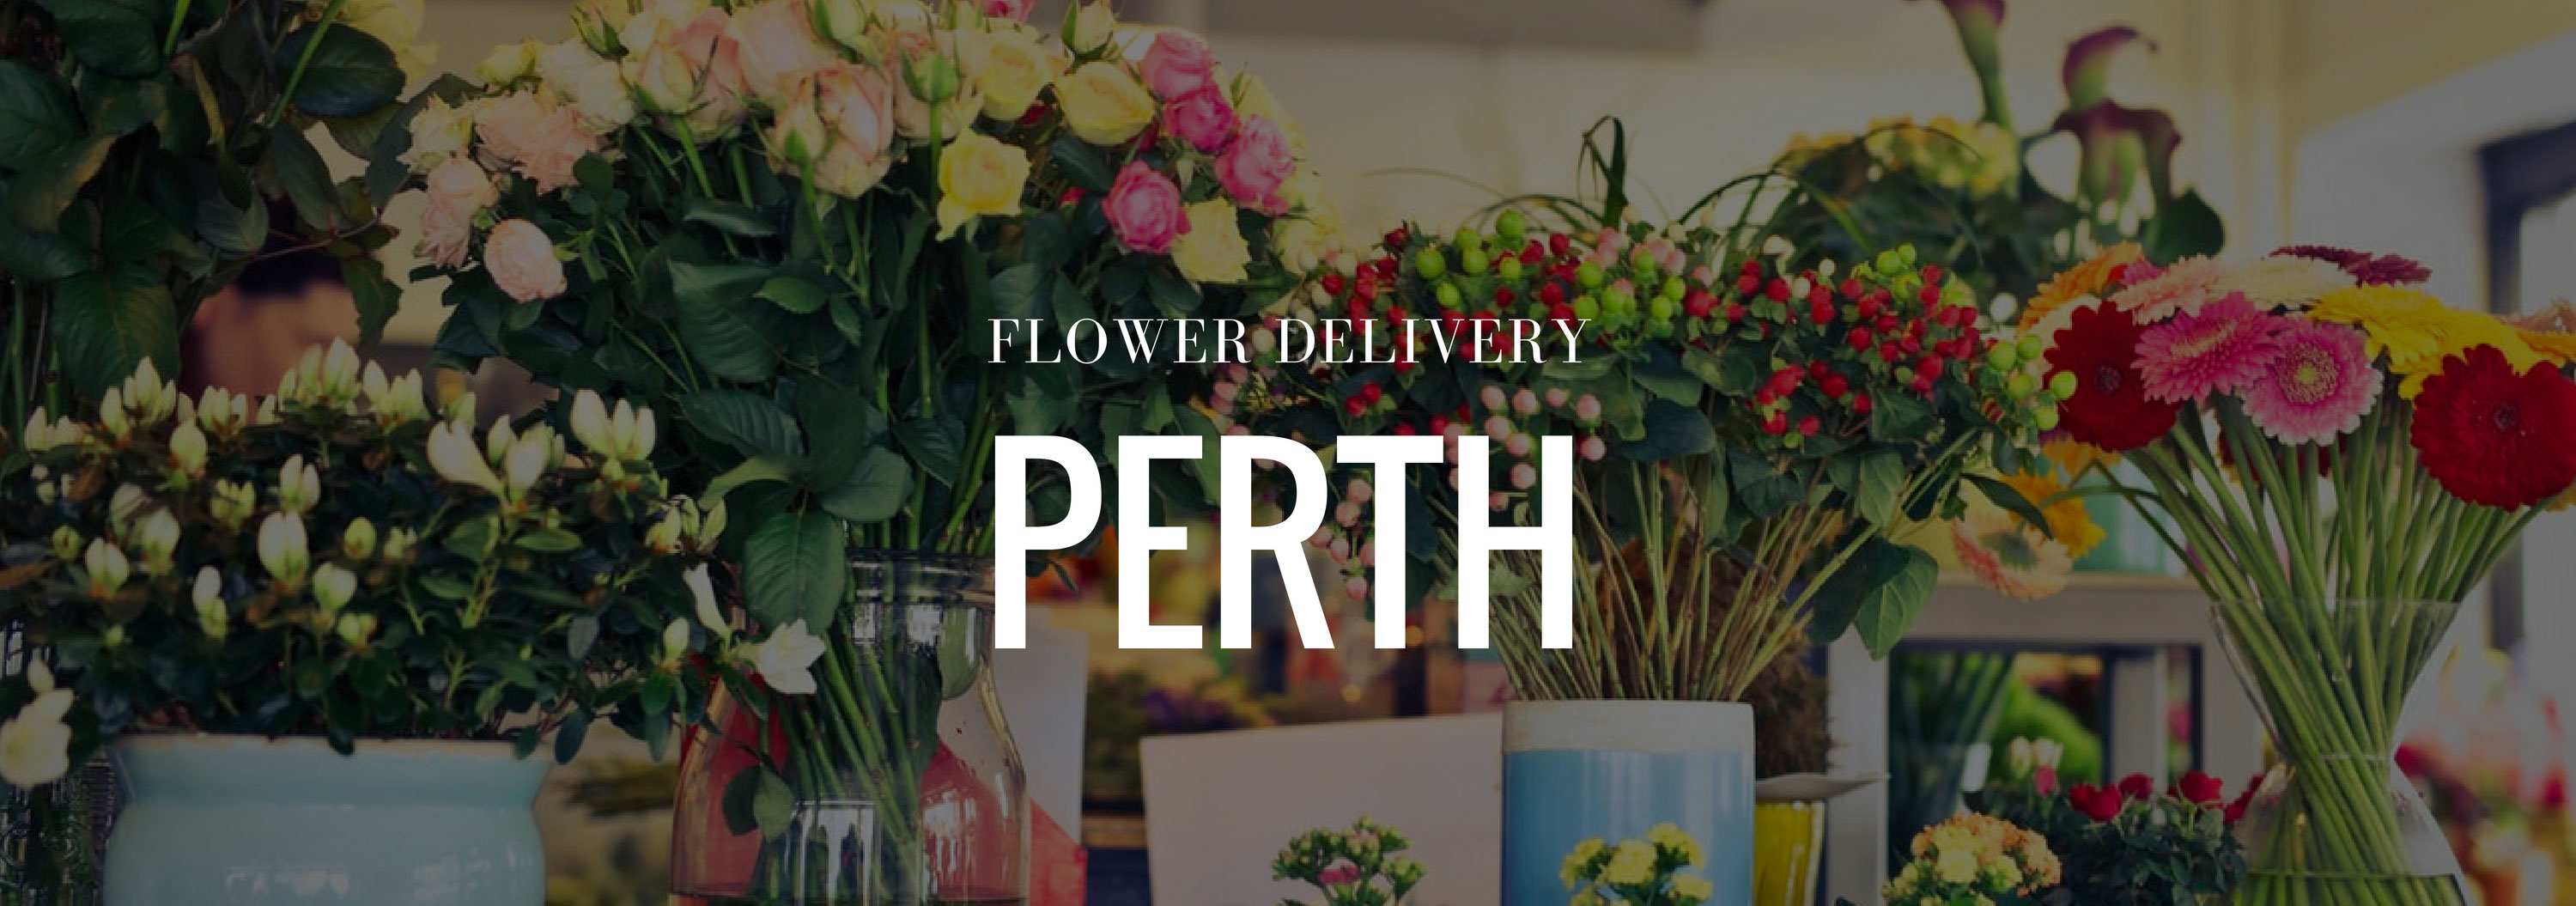 The 16 Best Options for Flower Delivery in Perth